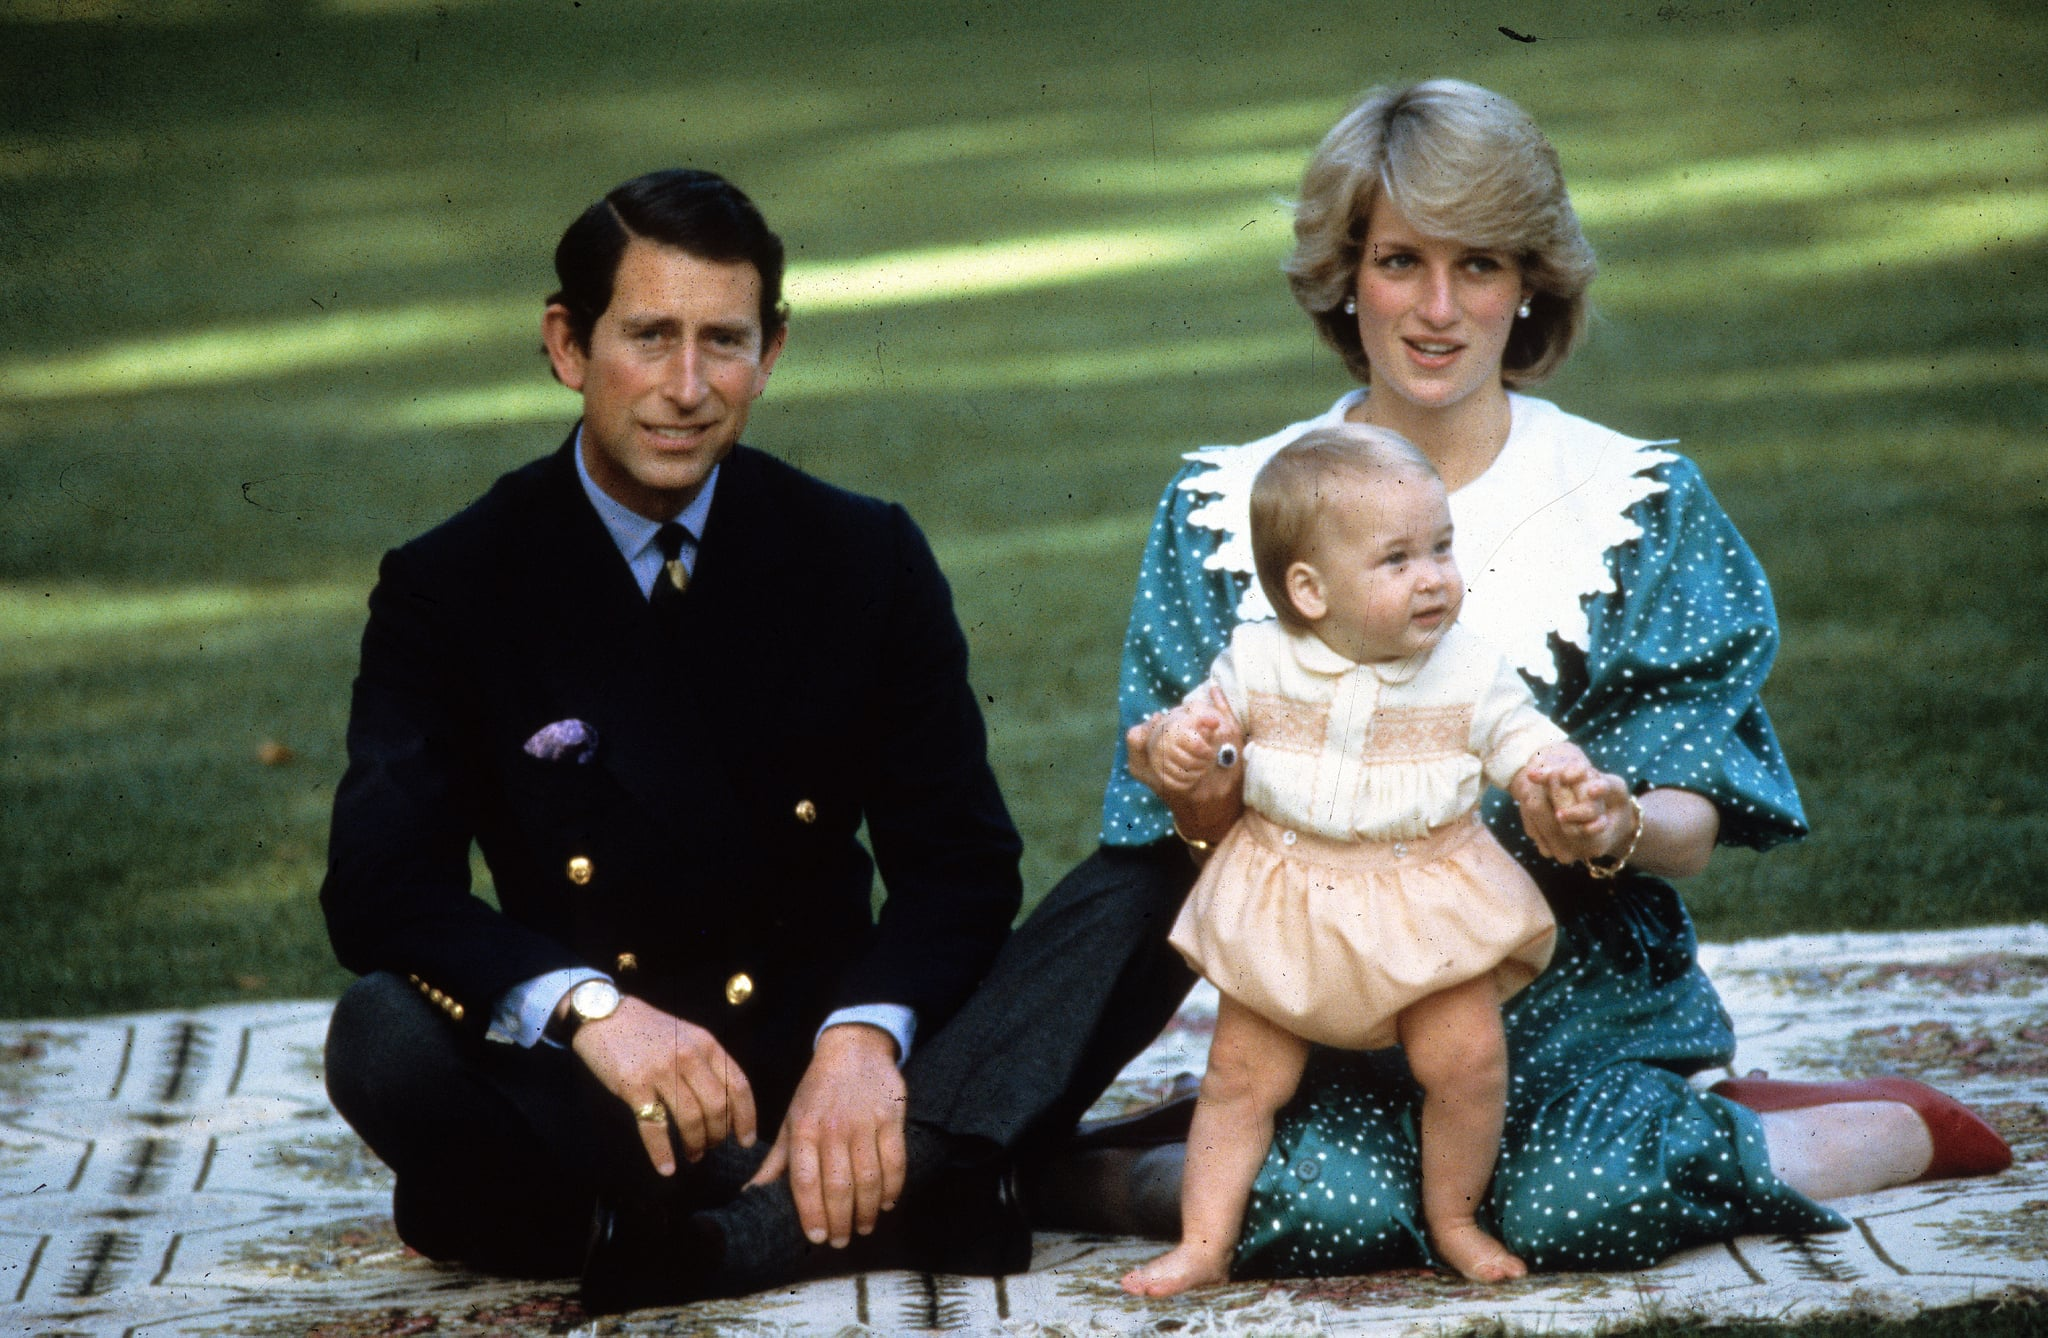 AUCKLAND, NEW ZEALAND - APRIL 18:  Princess Diana, Princess of Wales and Prince Charles, Prince of Wales play with their baby son Prince William in the gardens of Government House on April 18, 1983 in Auckland, New Zealand. (Photo by Anwar Hussein/Getty Images)